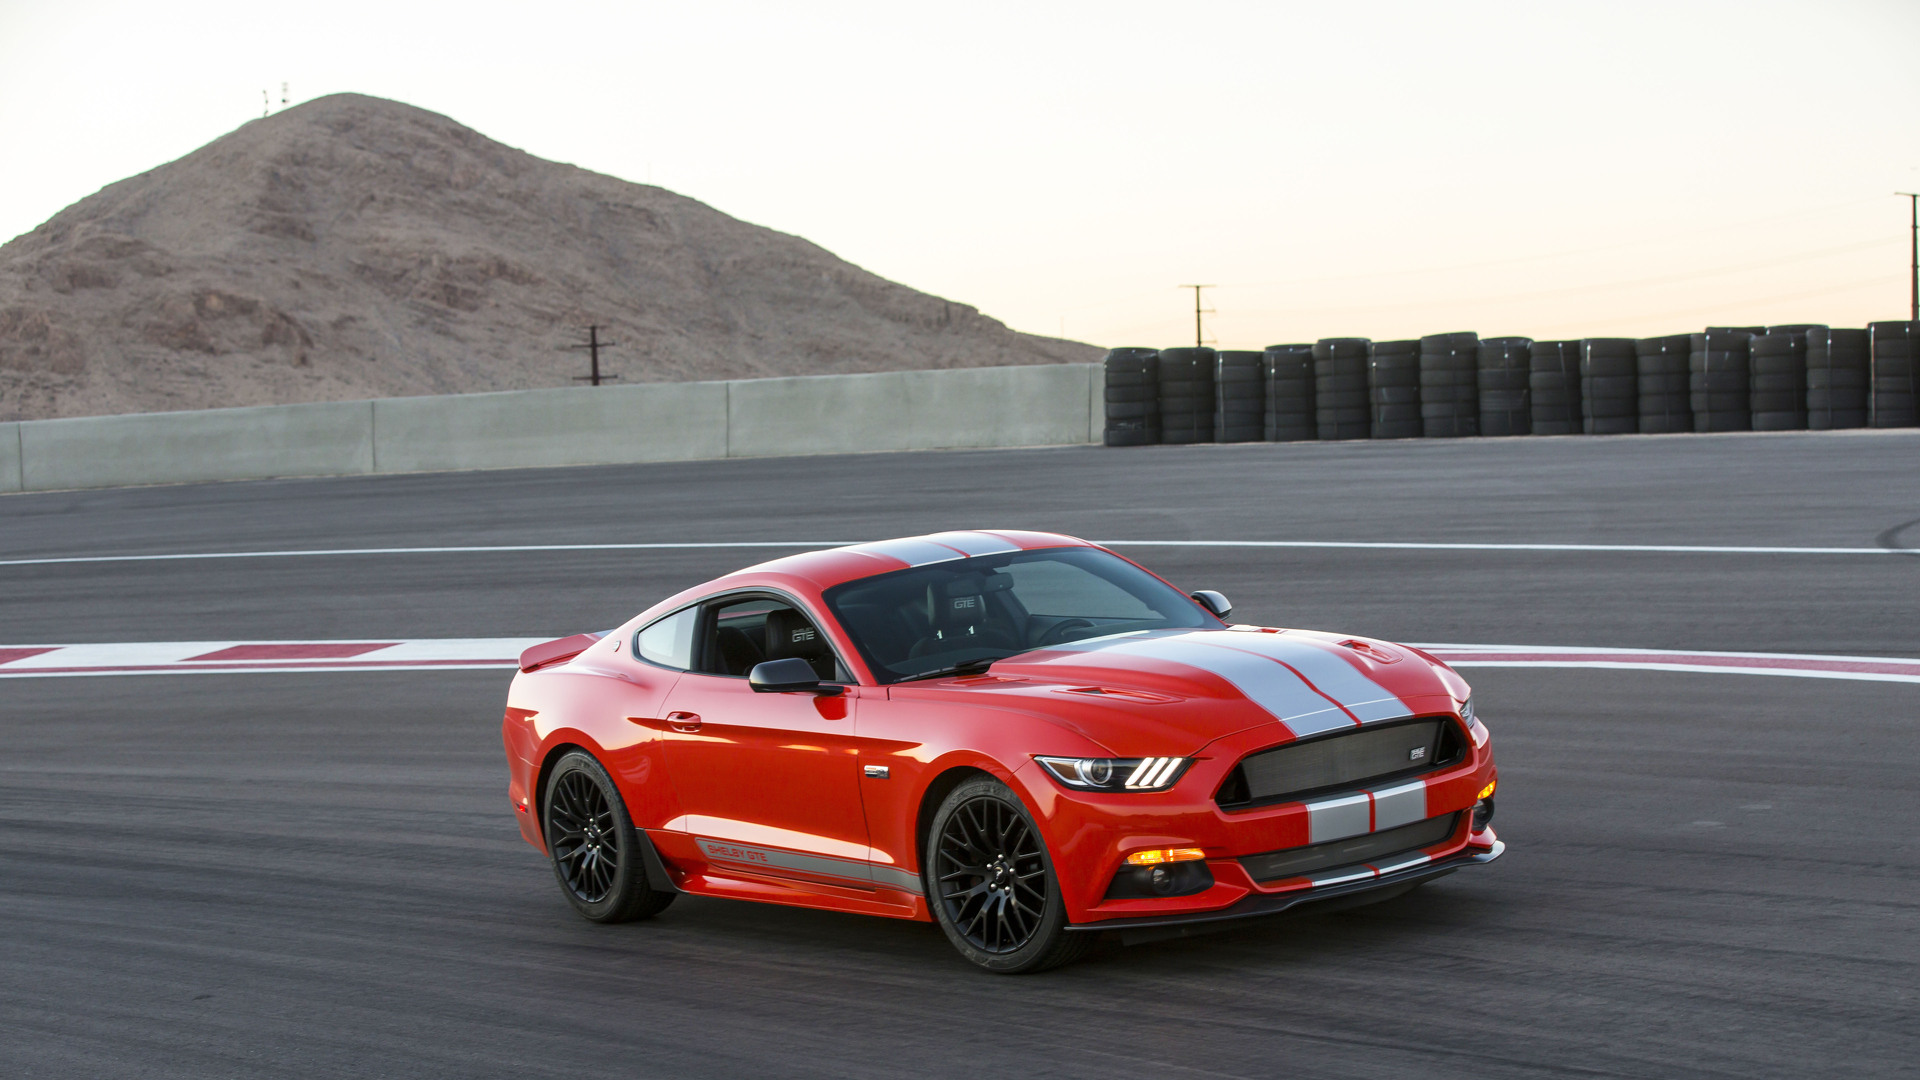 Ford Mustang Shelby Gte If The Gt350 Is Too Much Image